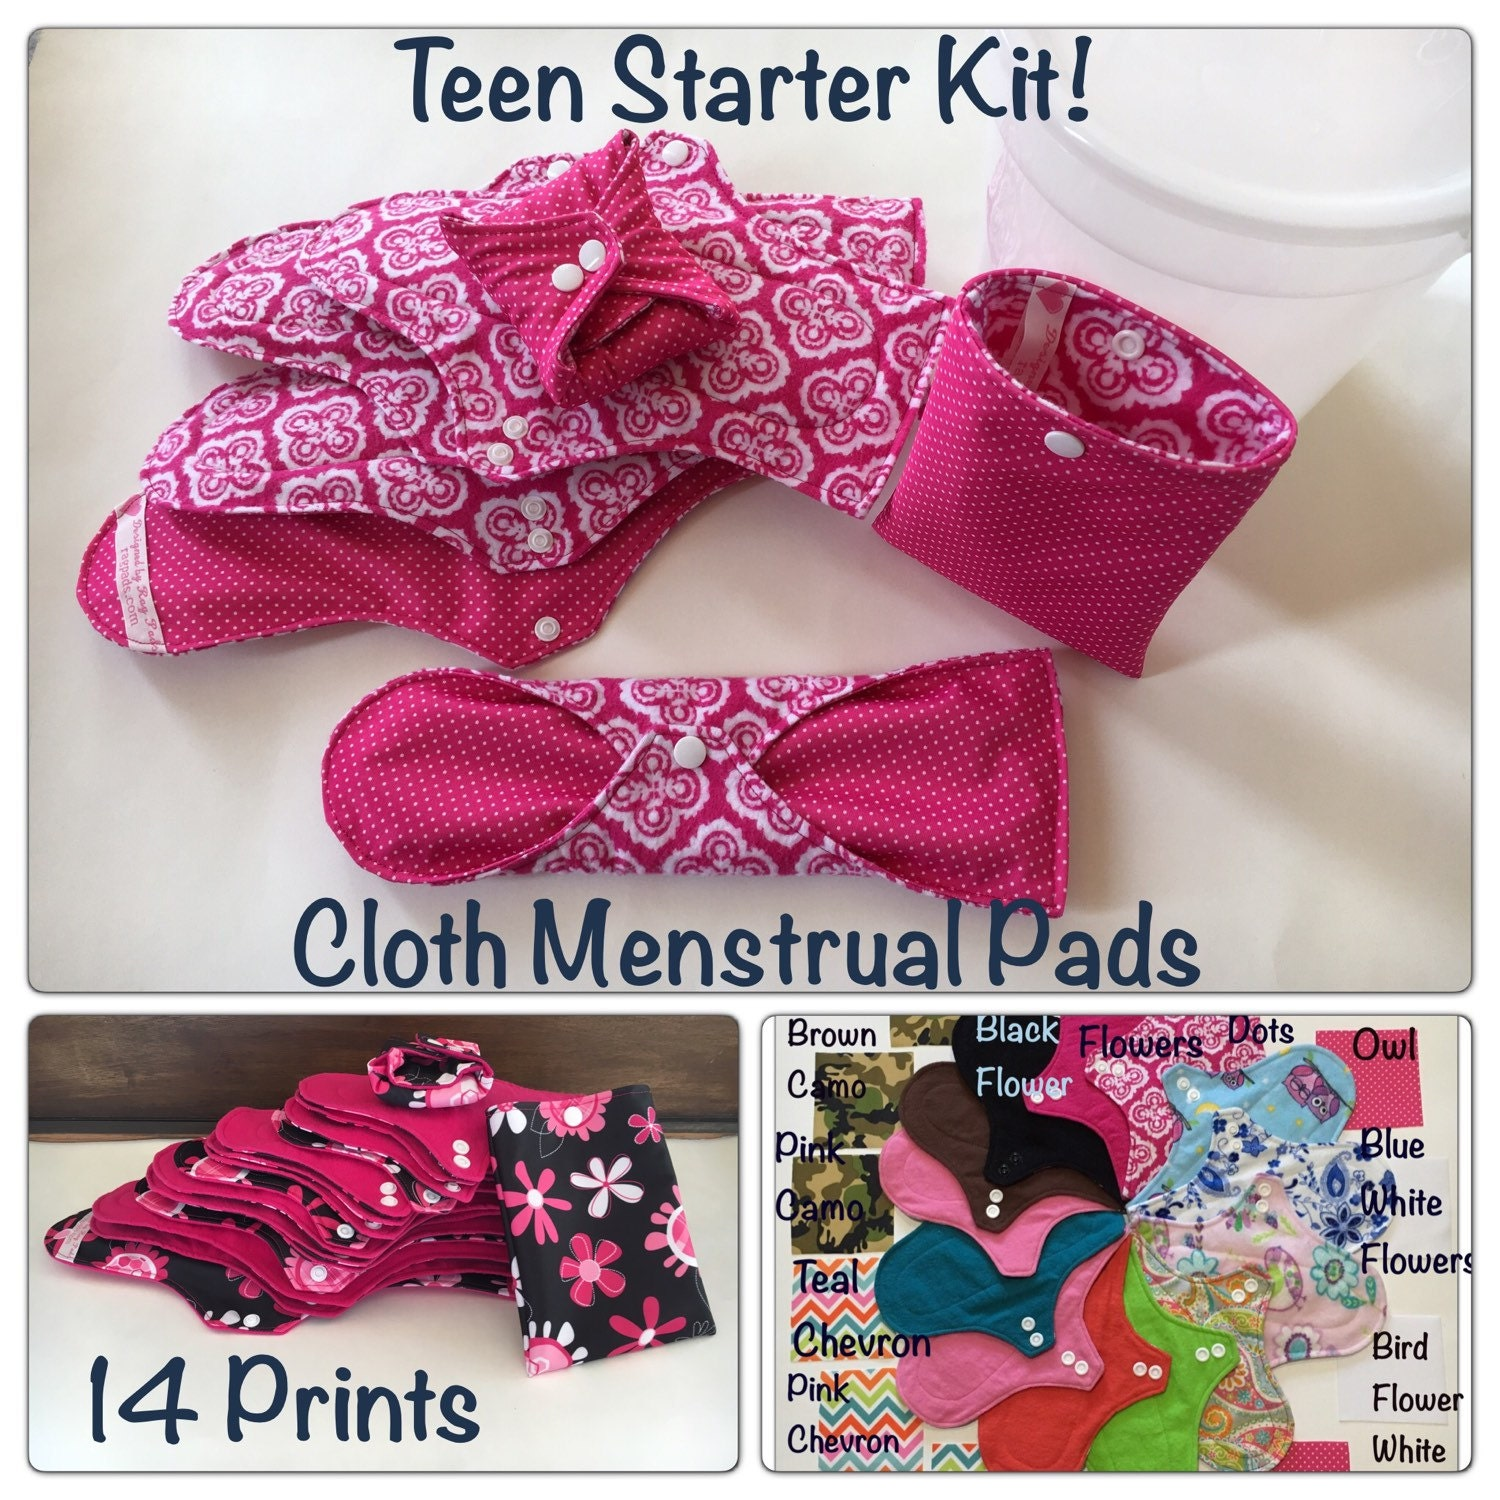 Best menstrual pads for petite teenagers